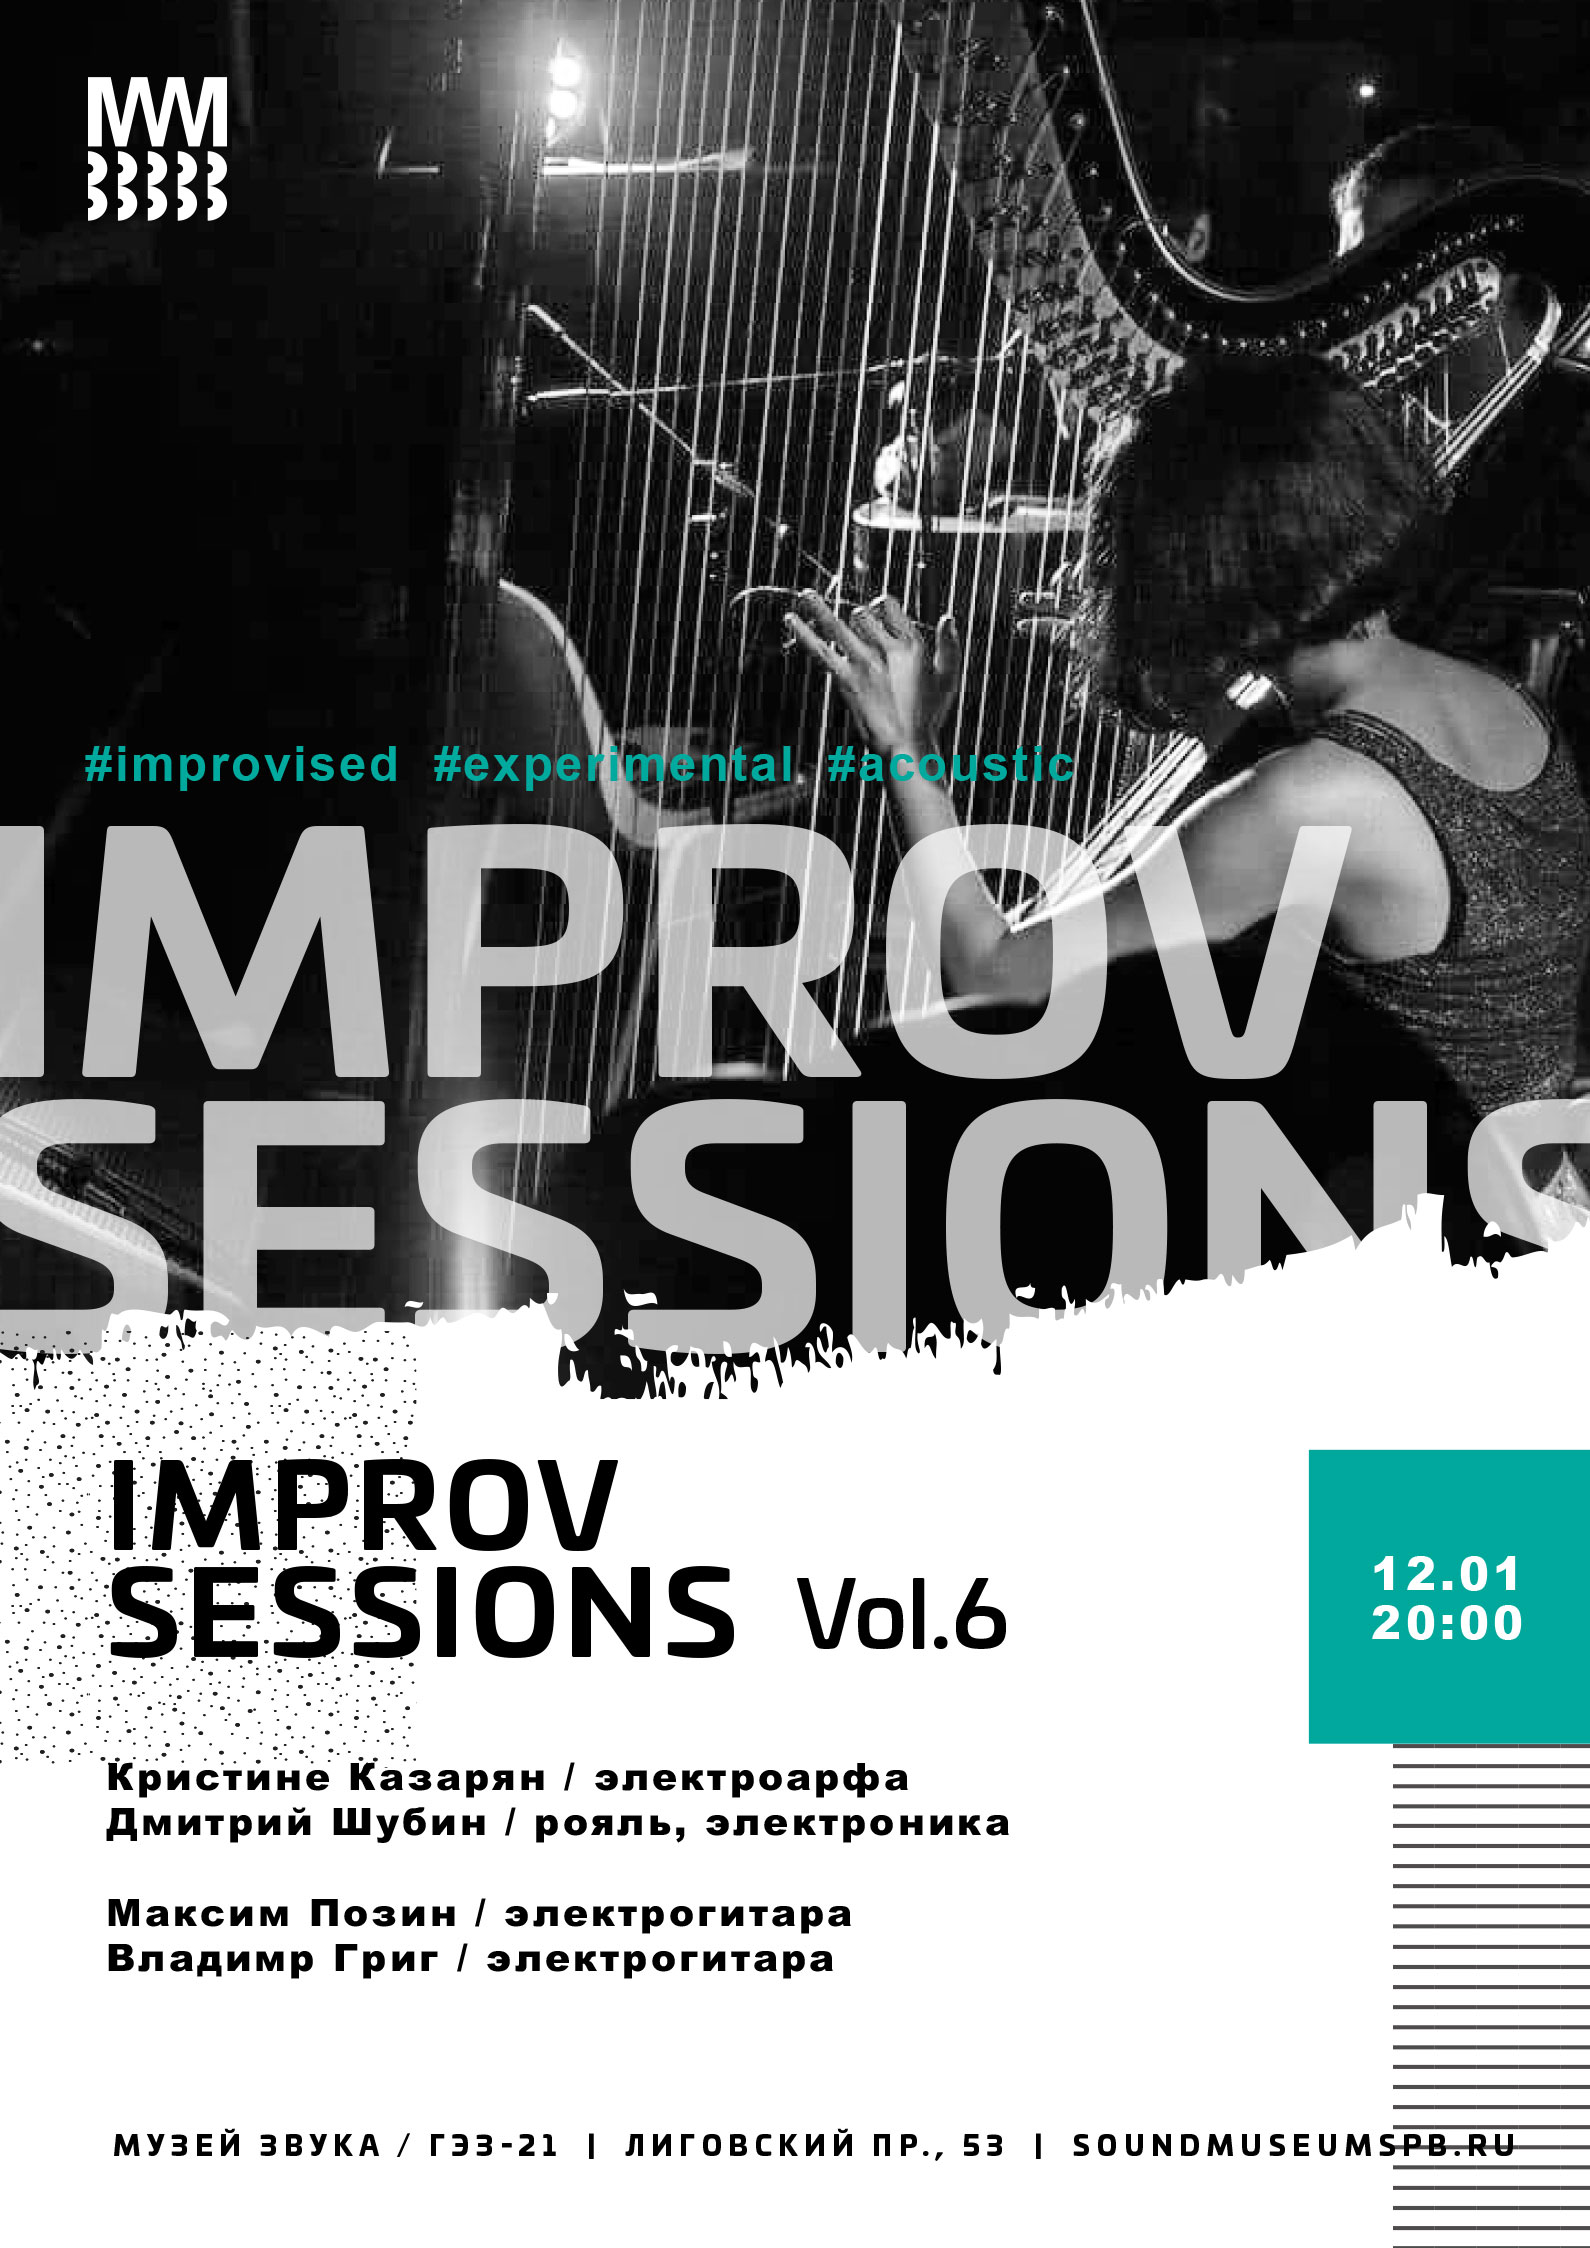 IMPROV SESSIONS Vol.6